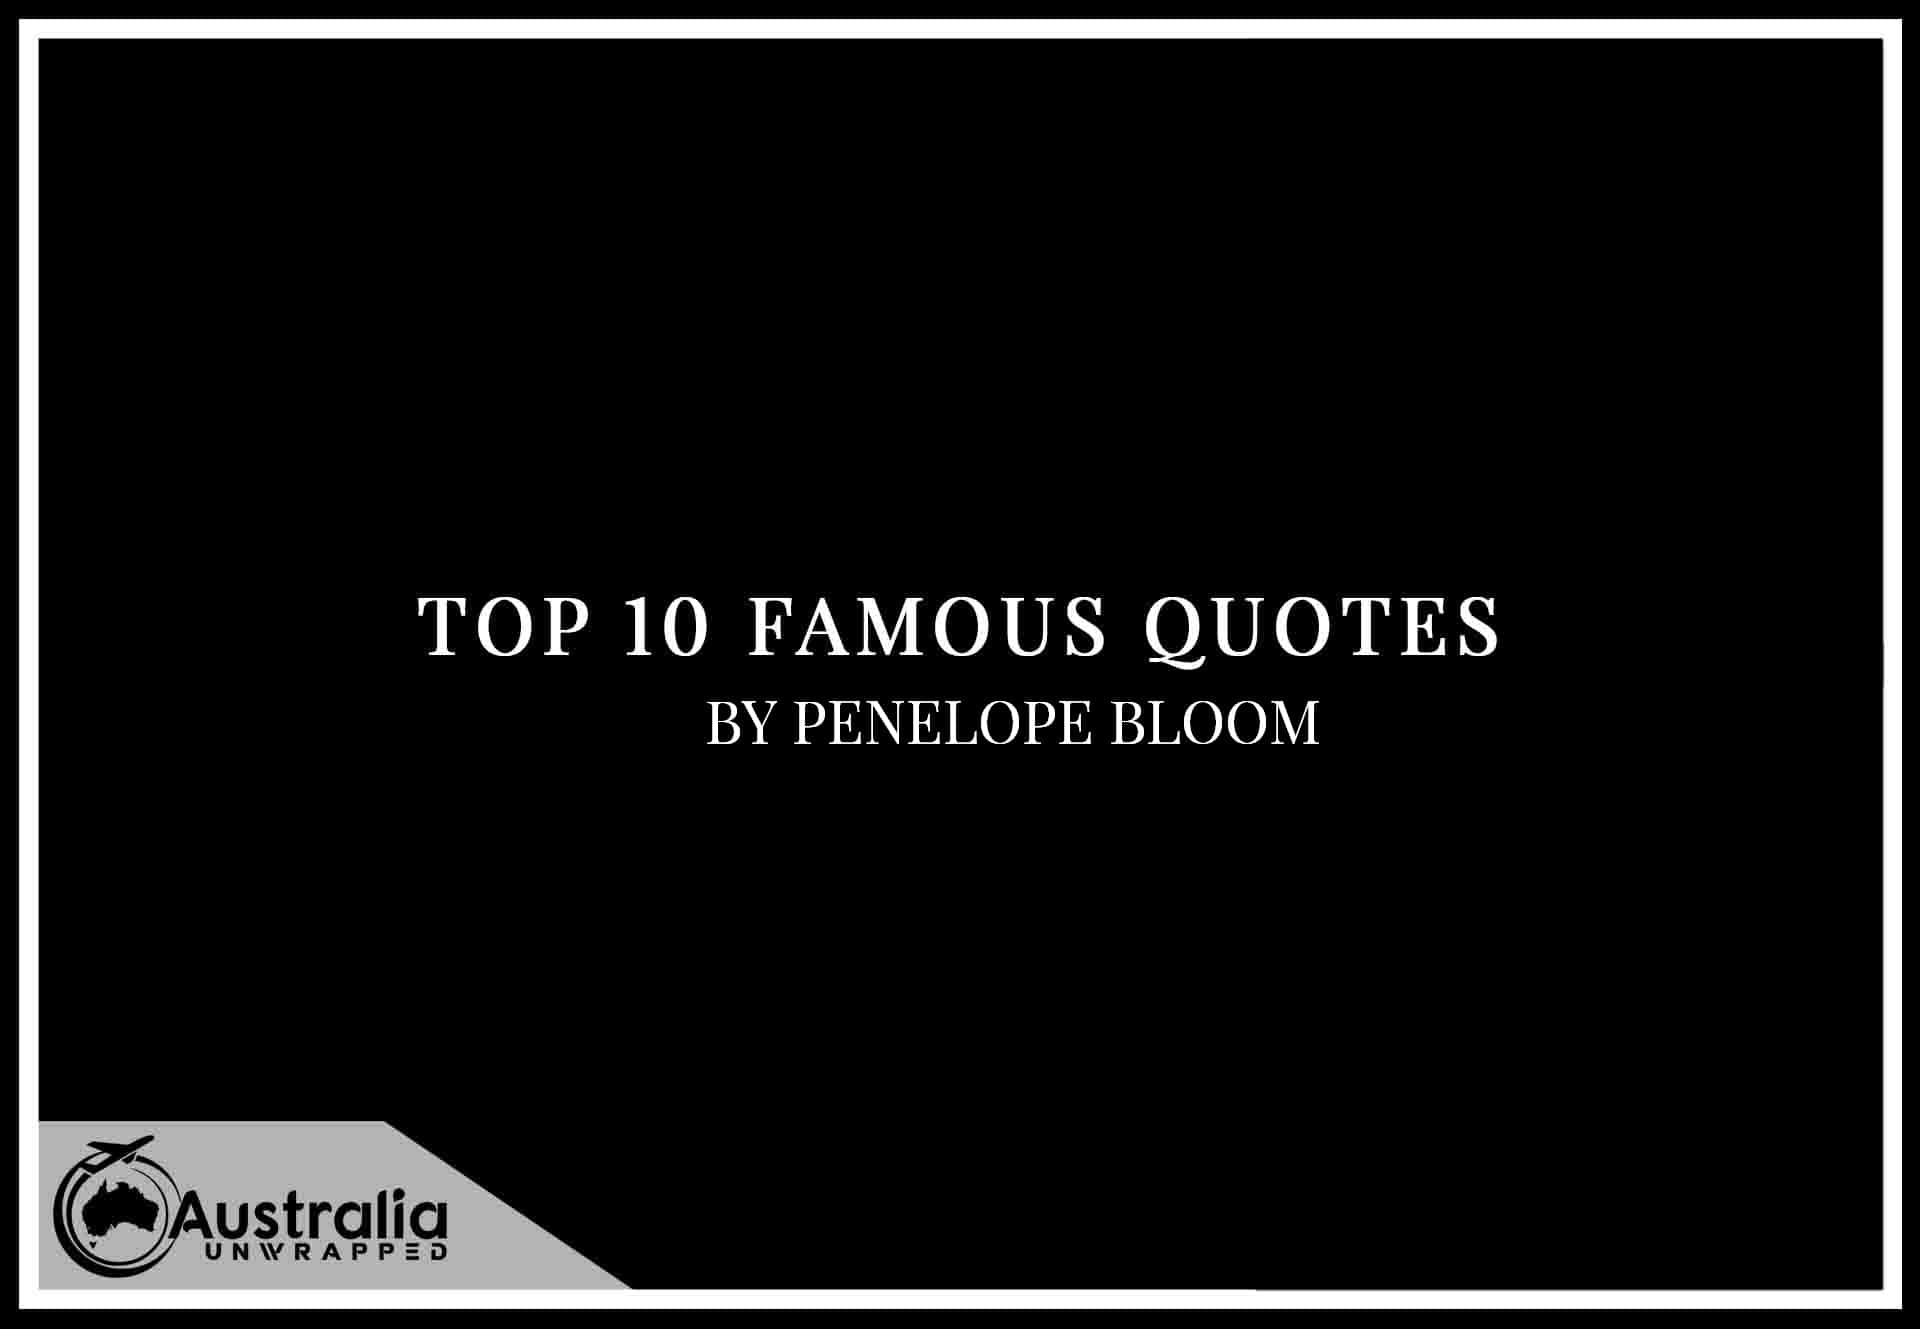 Top 10 Famous Quotes by Author Penelope Bloom